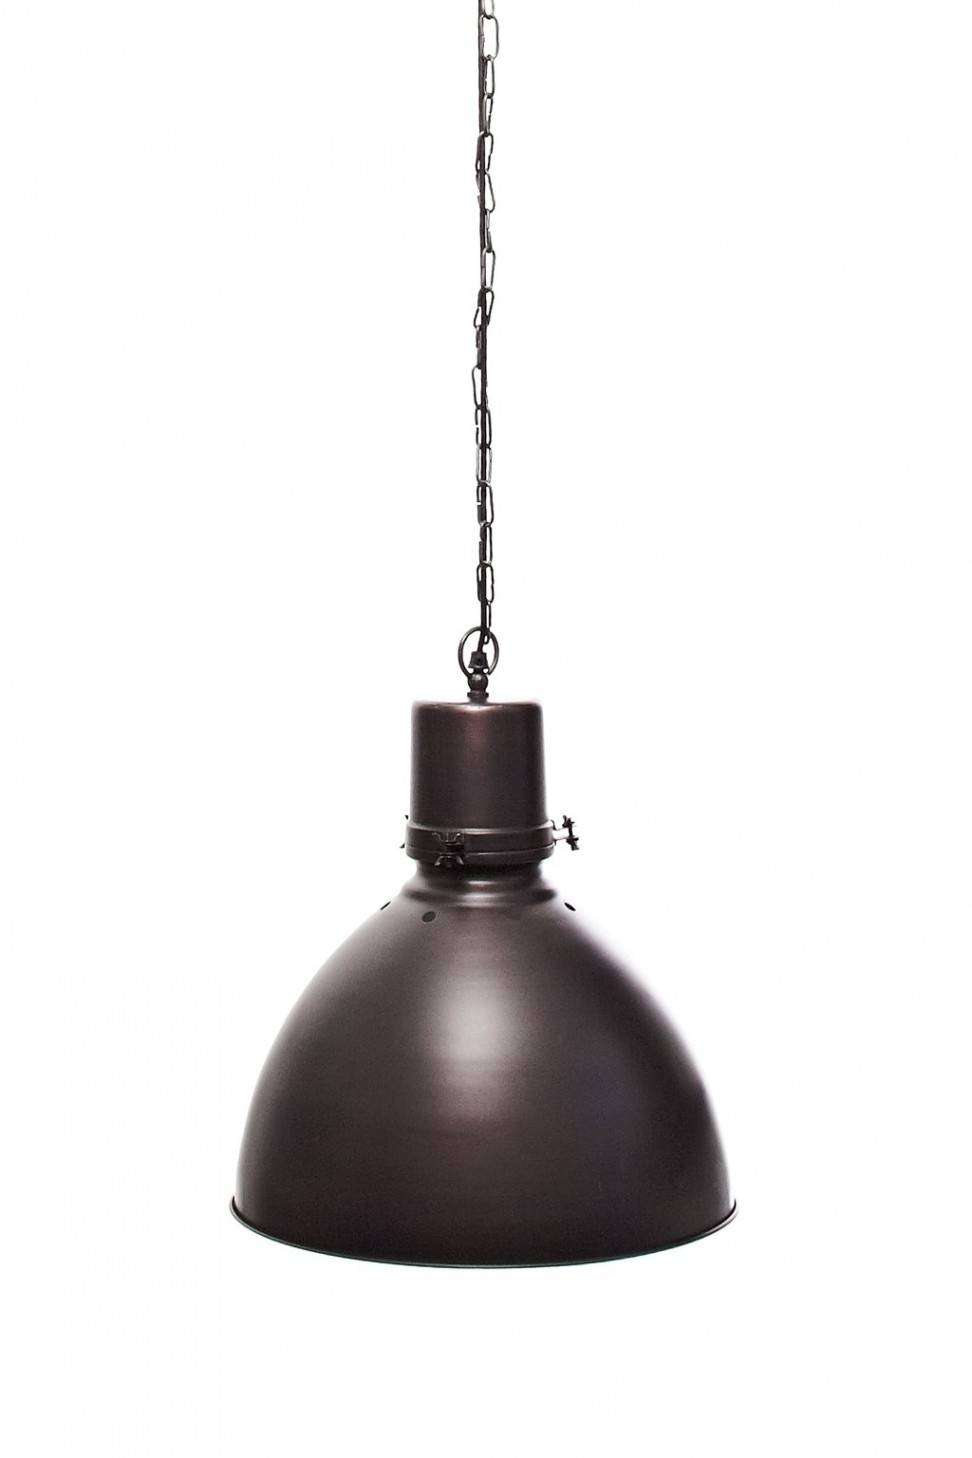 Home Decor : Industrial Looking Lighting Antique Copper Pendant pertaining to Industrial Looking Lights Fixtures (Image 5 of 15)